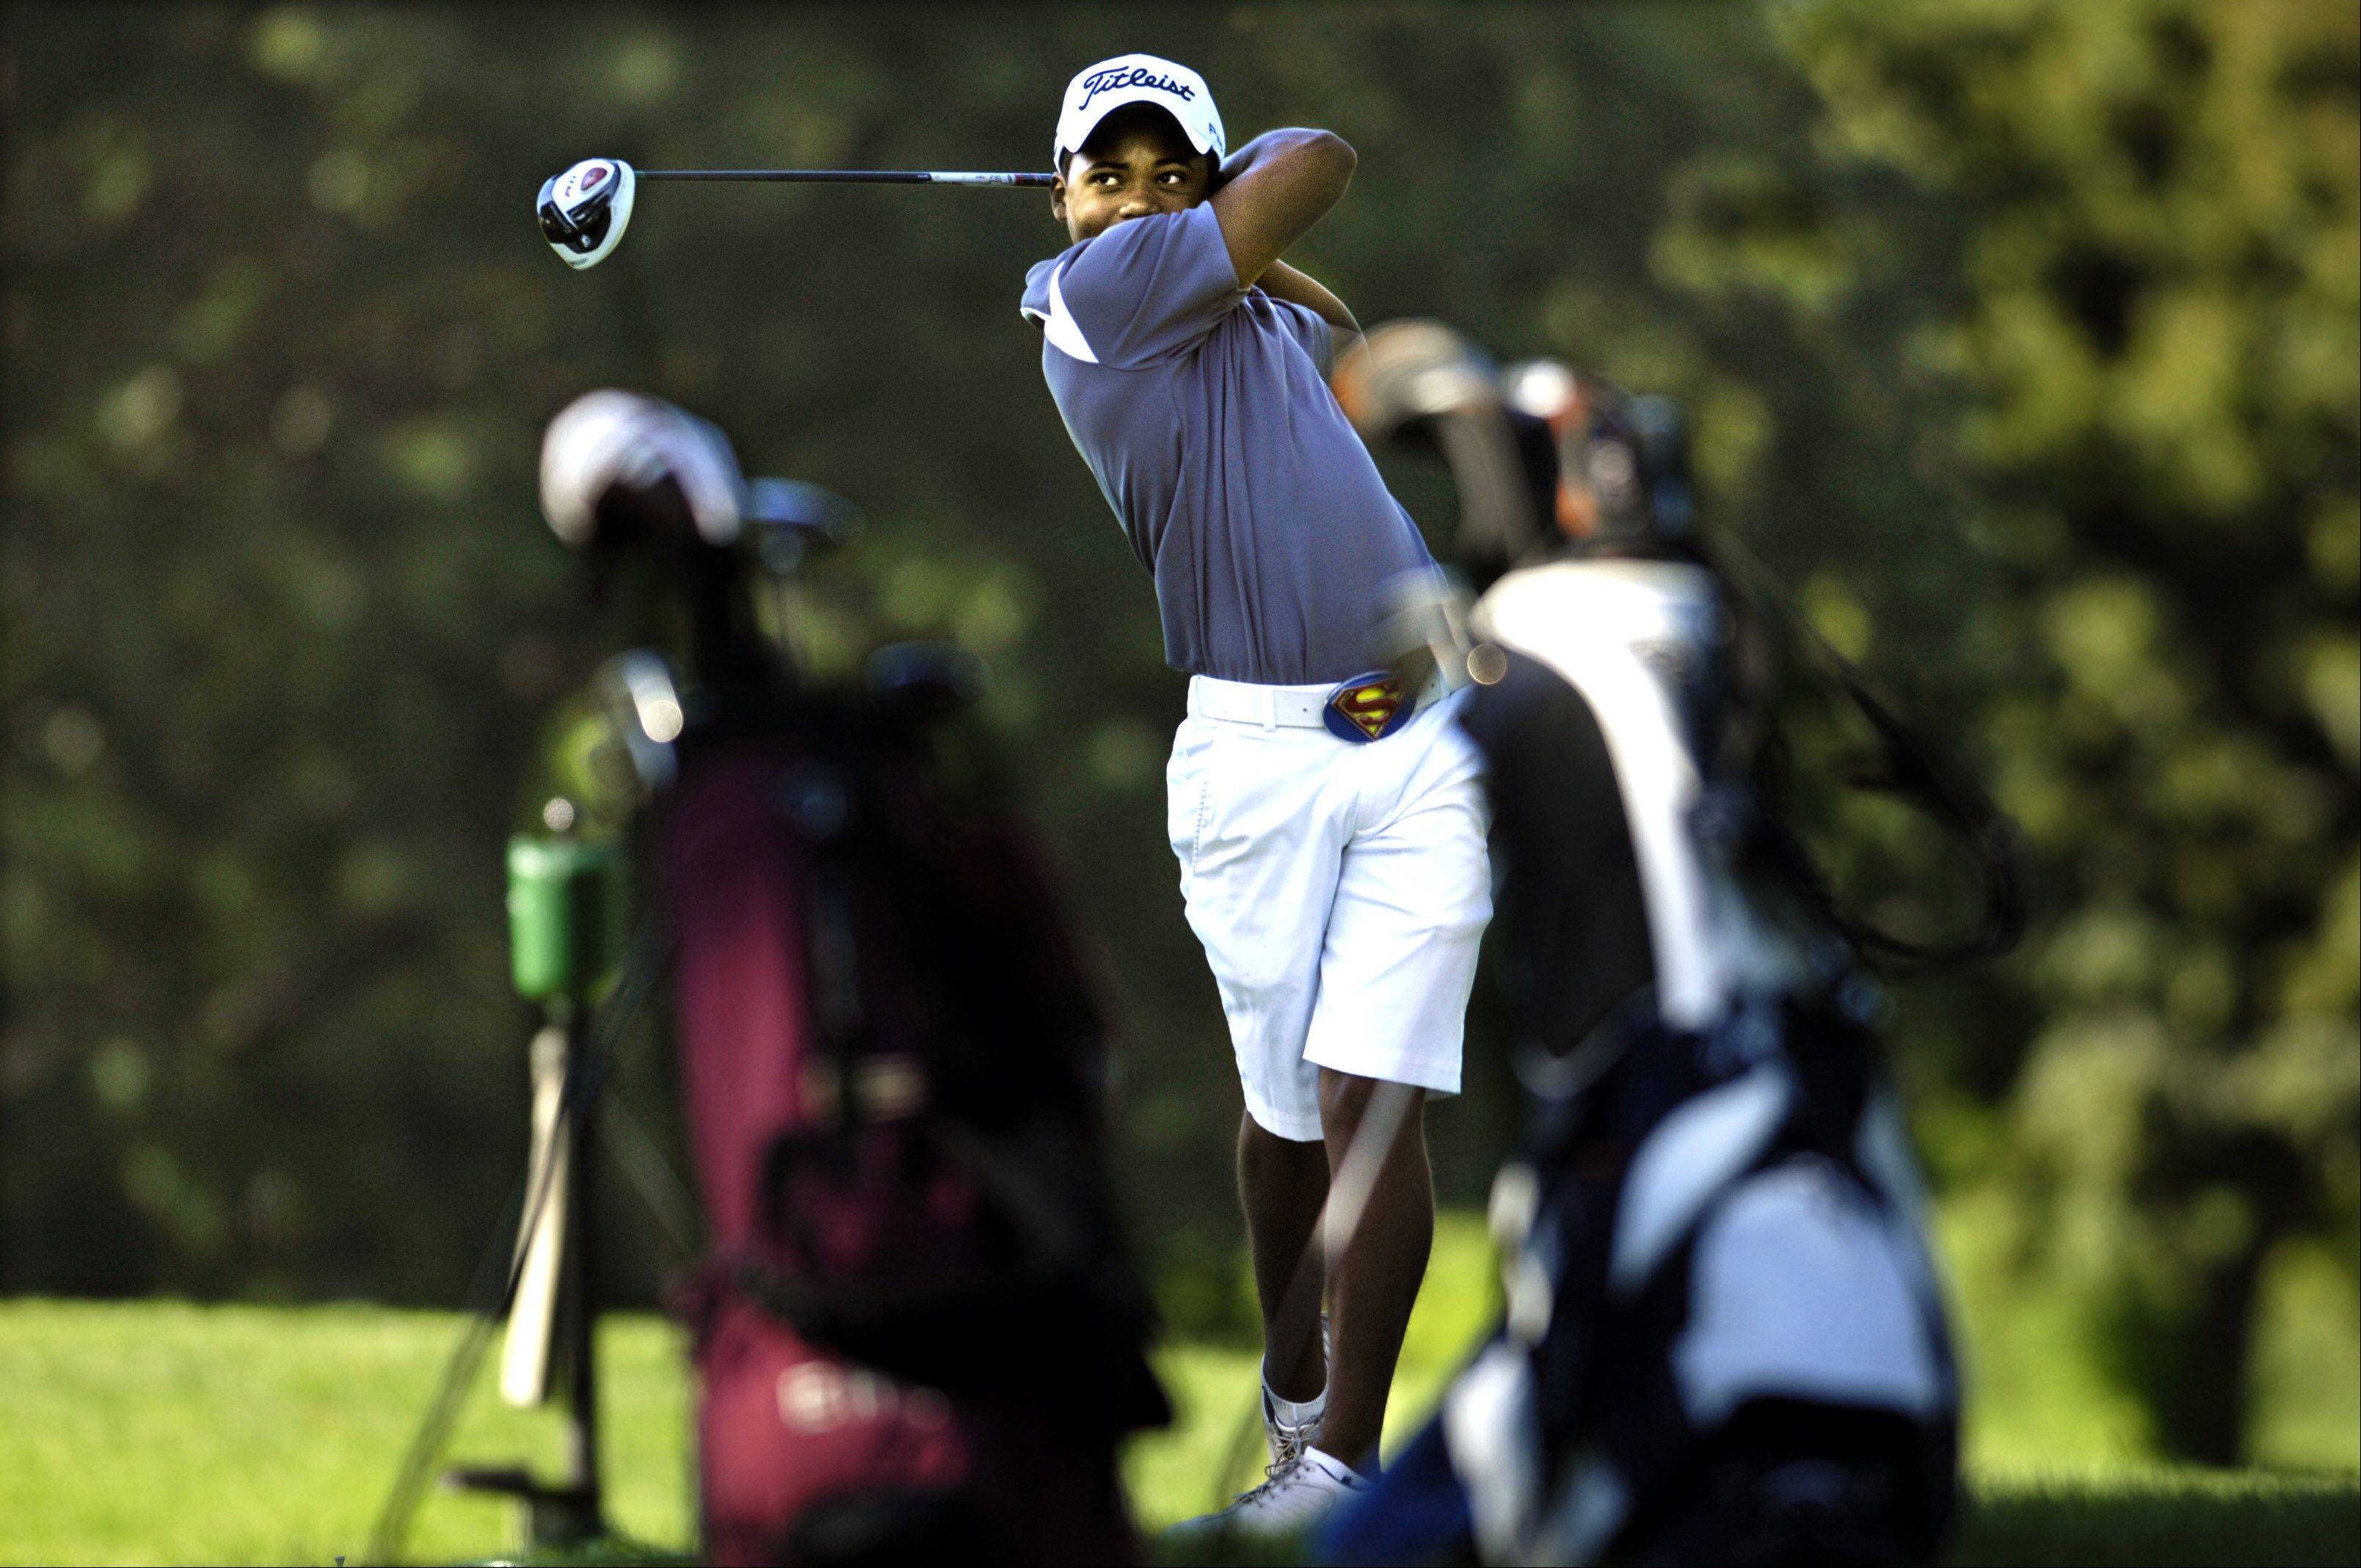 South Elgin's Xavier Owens tees off during the Elgin Country Club invitational Tuesday. Owens finished second with a 75.